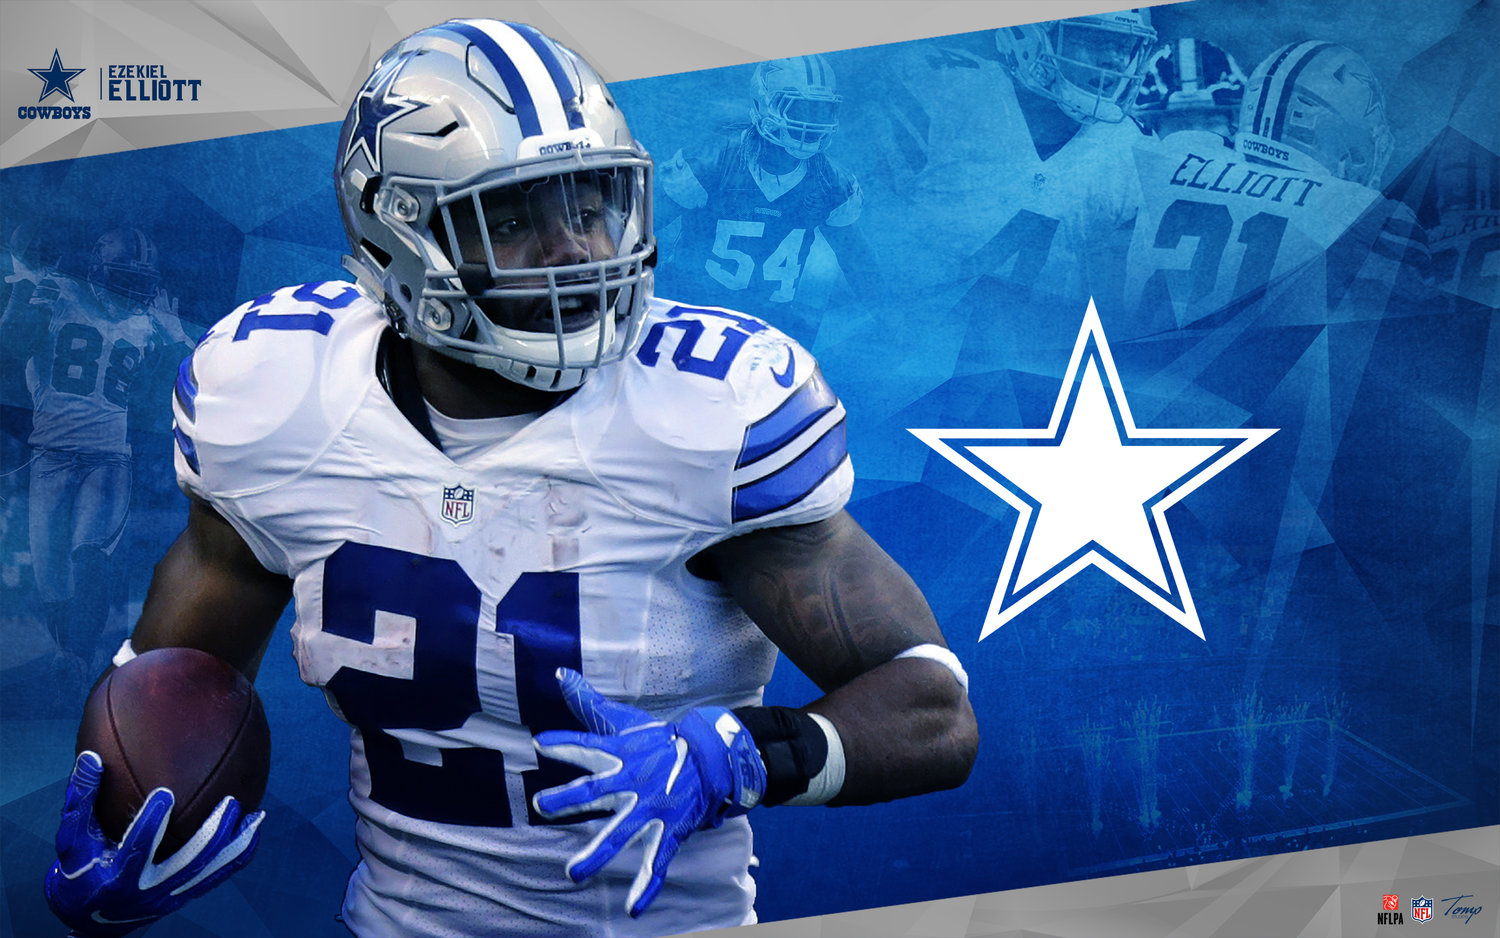 Ezekiel Elliott Wallpaper Cowboys 90 images in Collection Page 3 1500x938